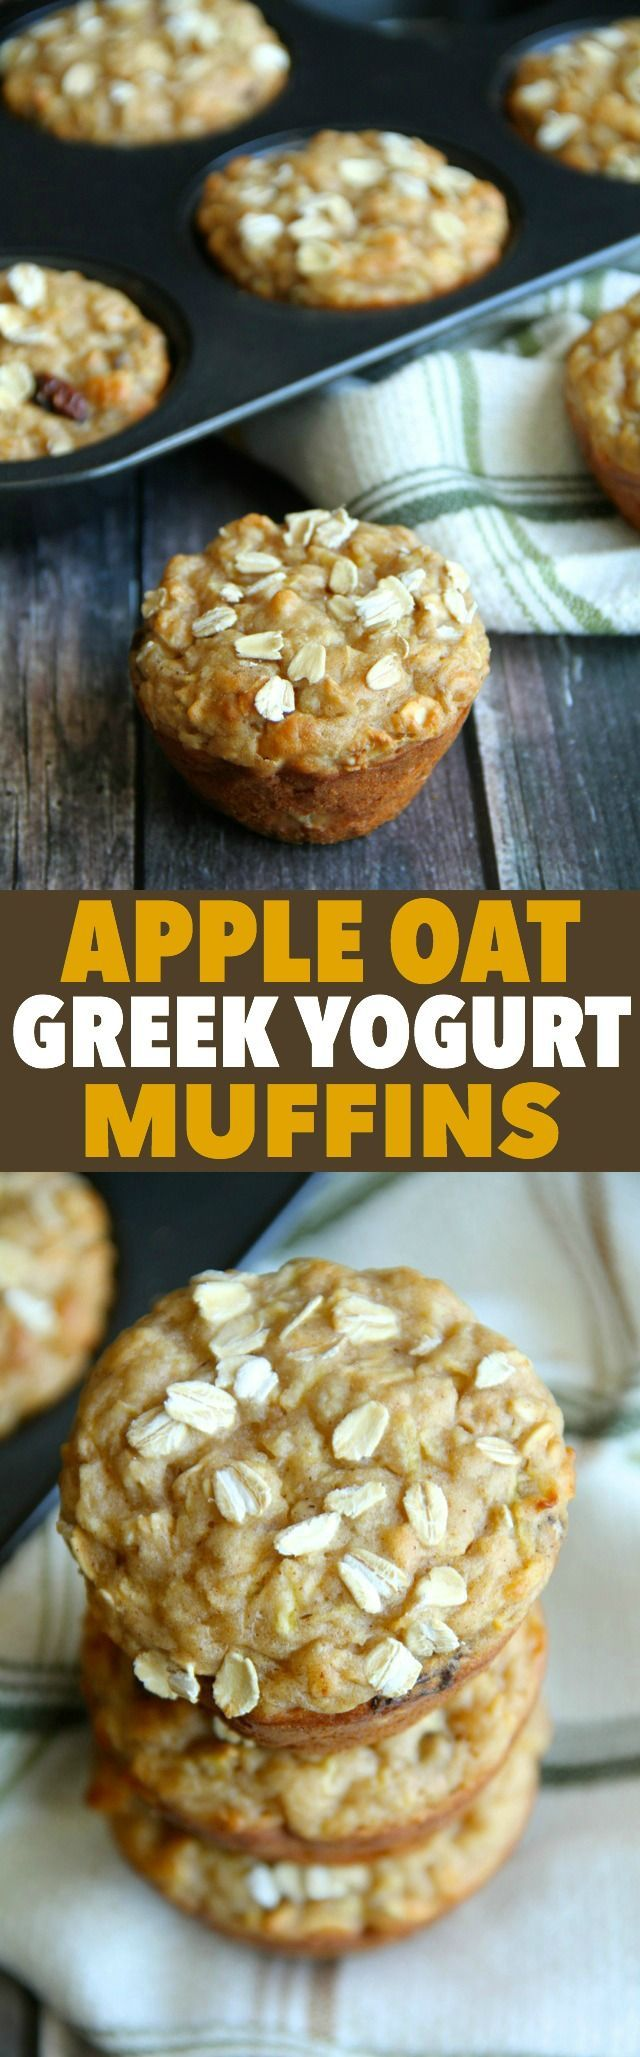 Apple Oat Greek Yogurt Muffins -- ridiculously soft and tender with NO butter or oil! A perfect breakfast or snack!| #healthy #apple #muffins